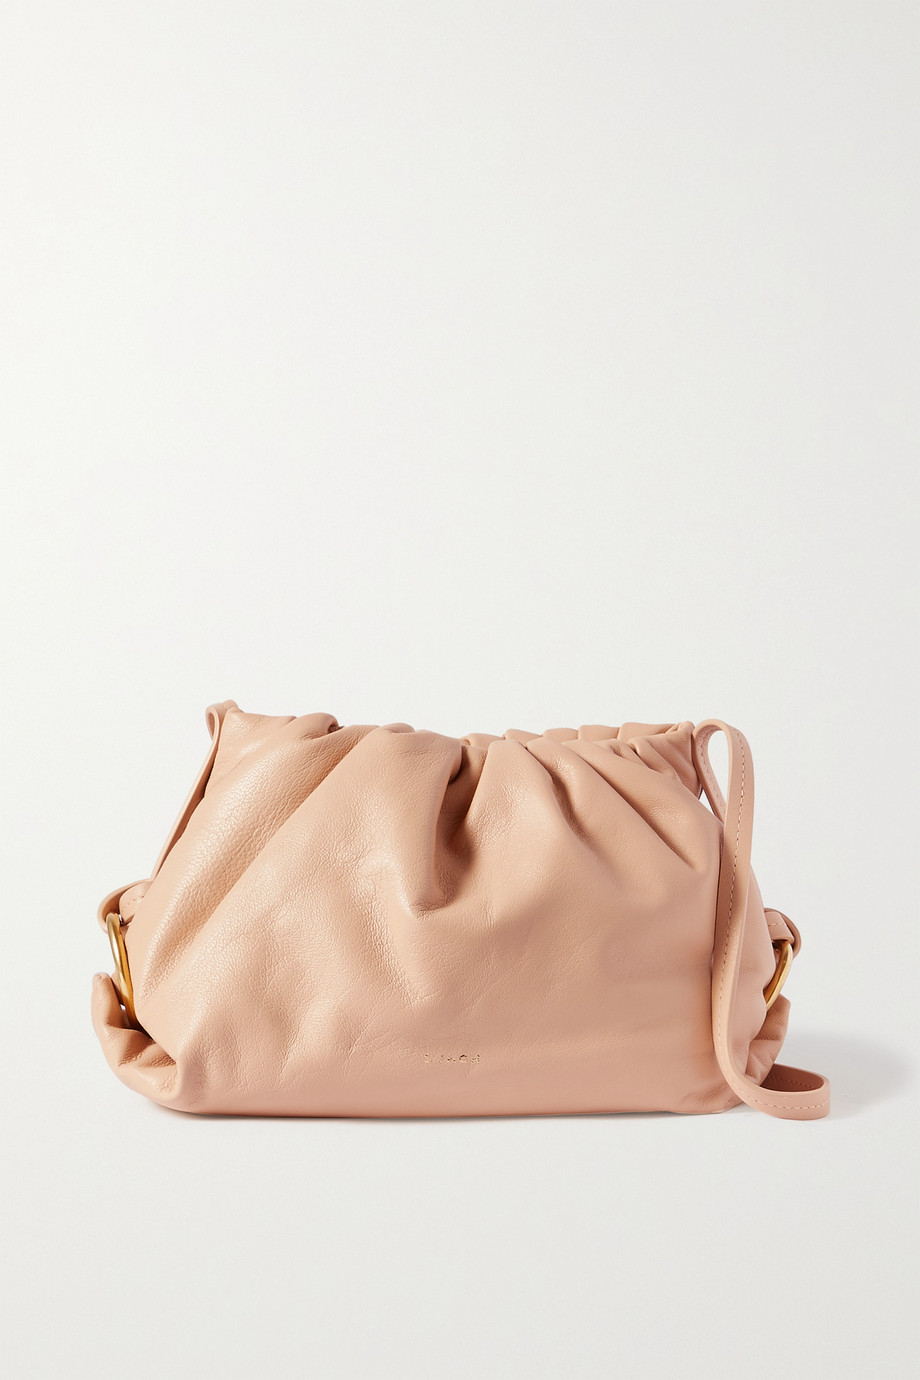 S.JOON Baby Bao gathered leather shoulder bag